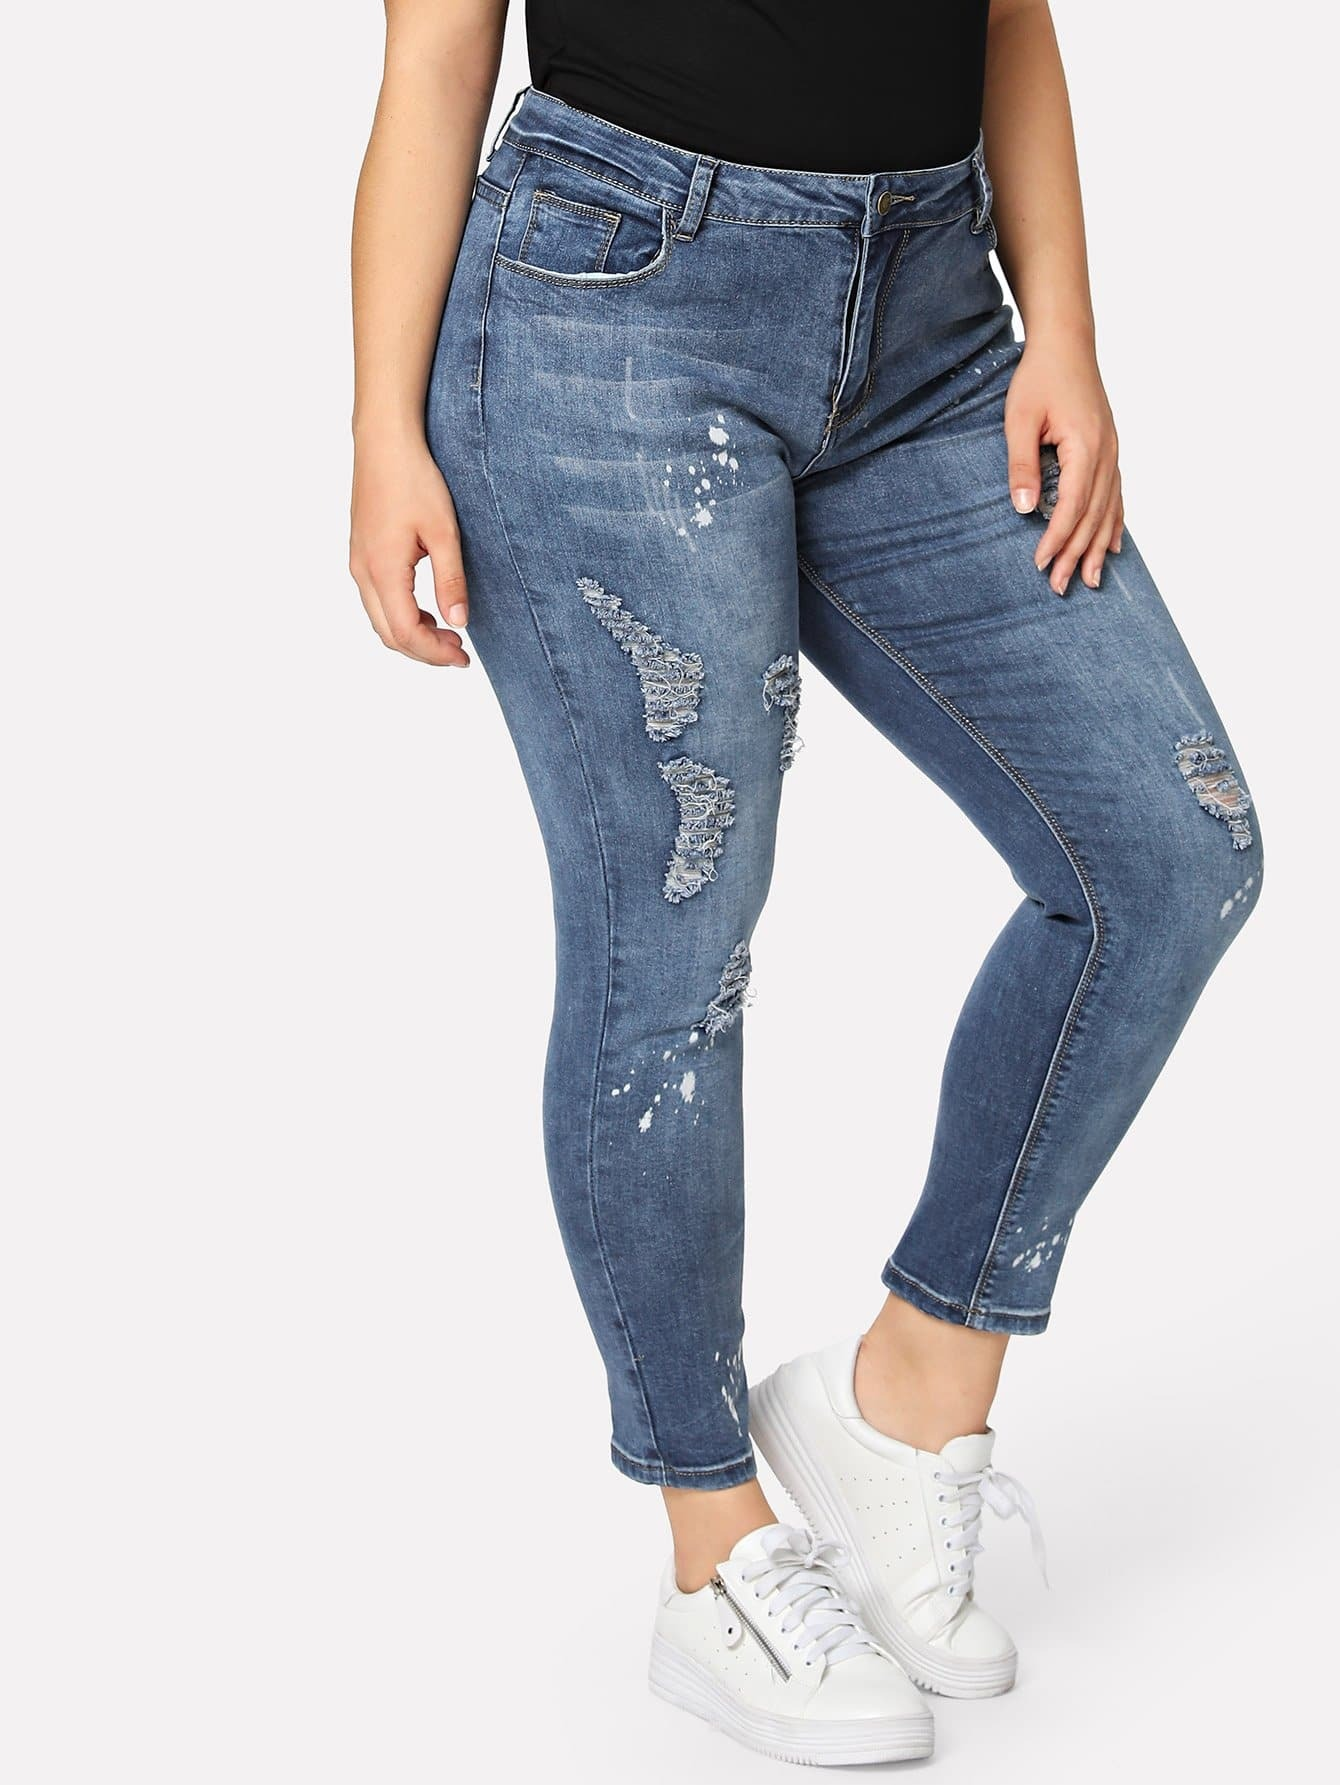 Plus Ripped Skinny Jeans summer boyfriend jeans for women hole ripped white lace flowers denim pants low waist mujer vintage skinny stretch jeans female